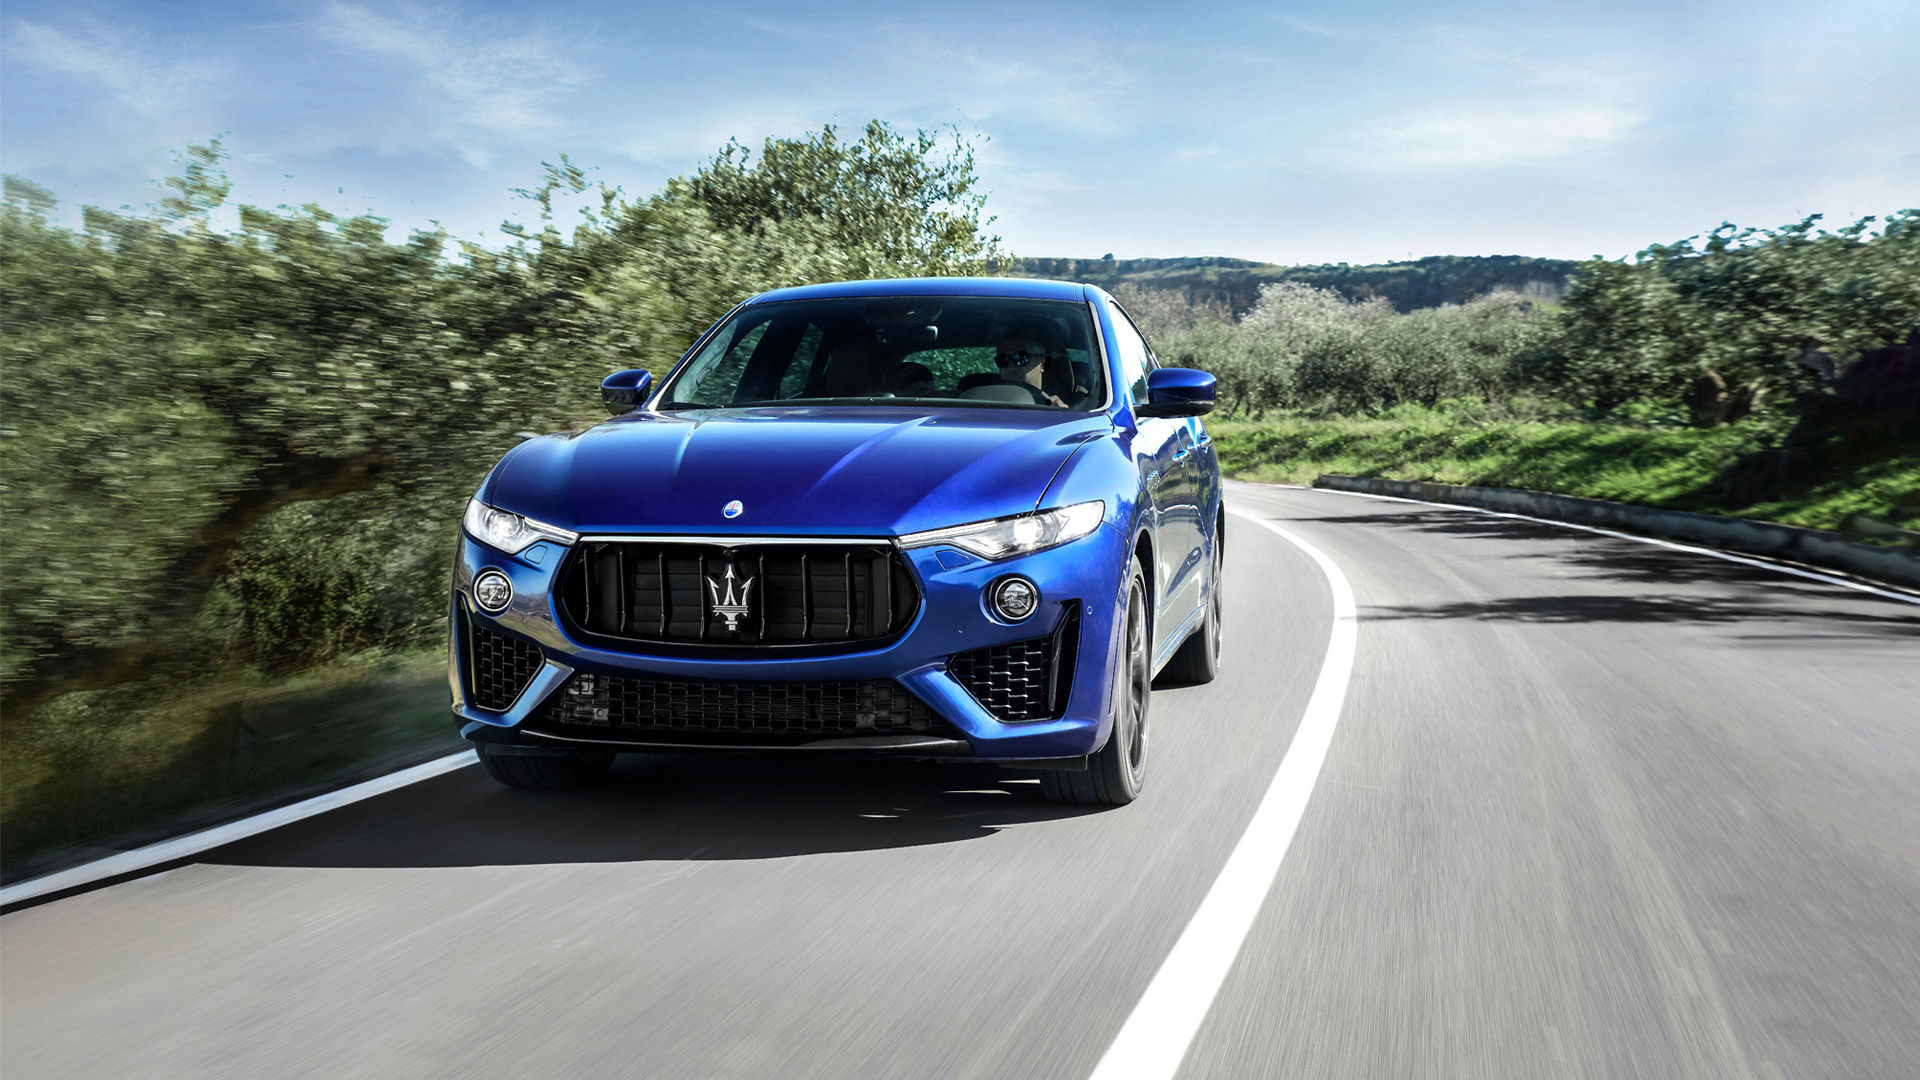 Maserati Levante - Levante GranSport front view, riding on a country road